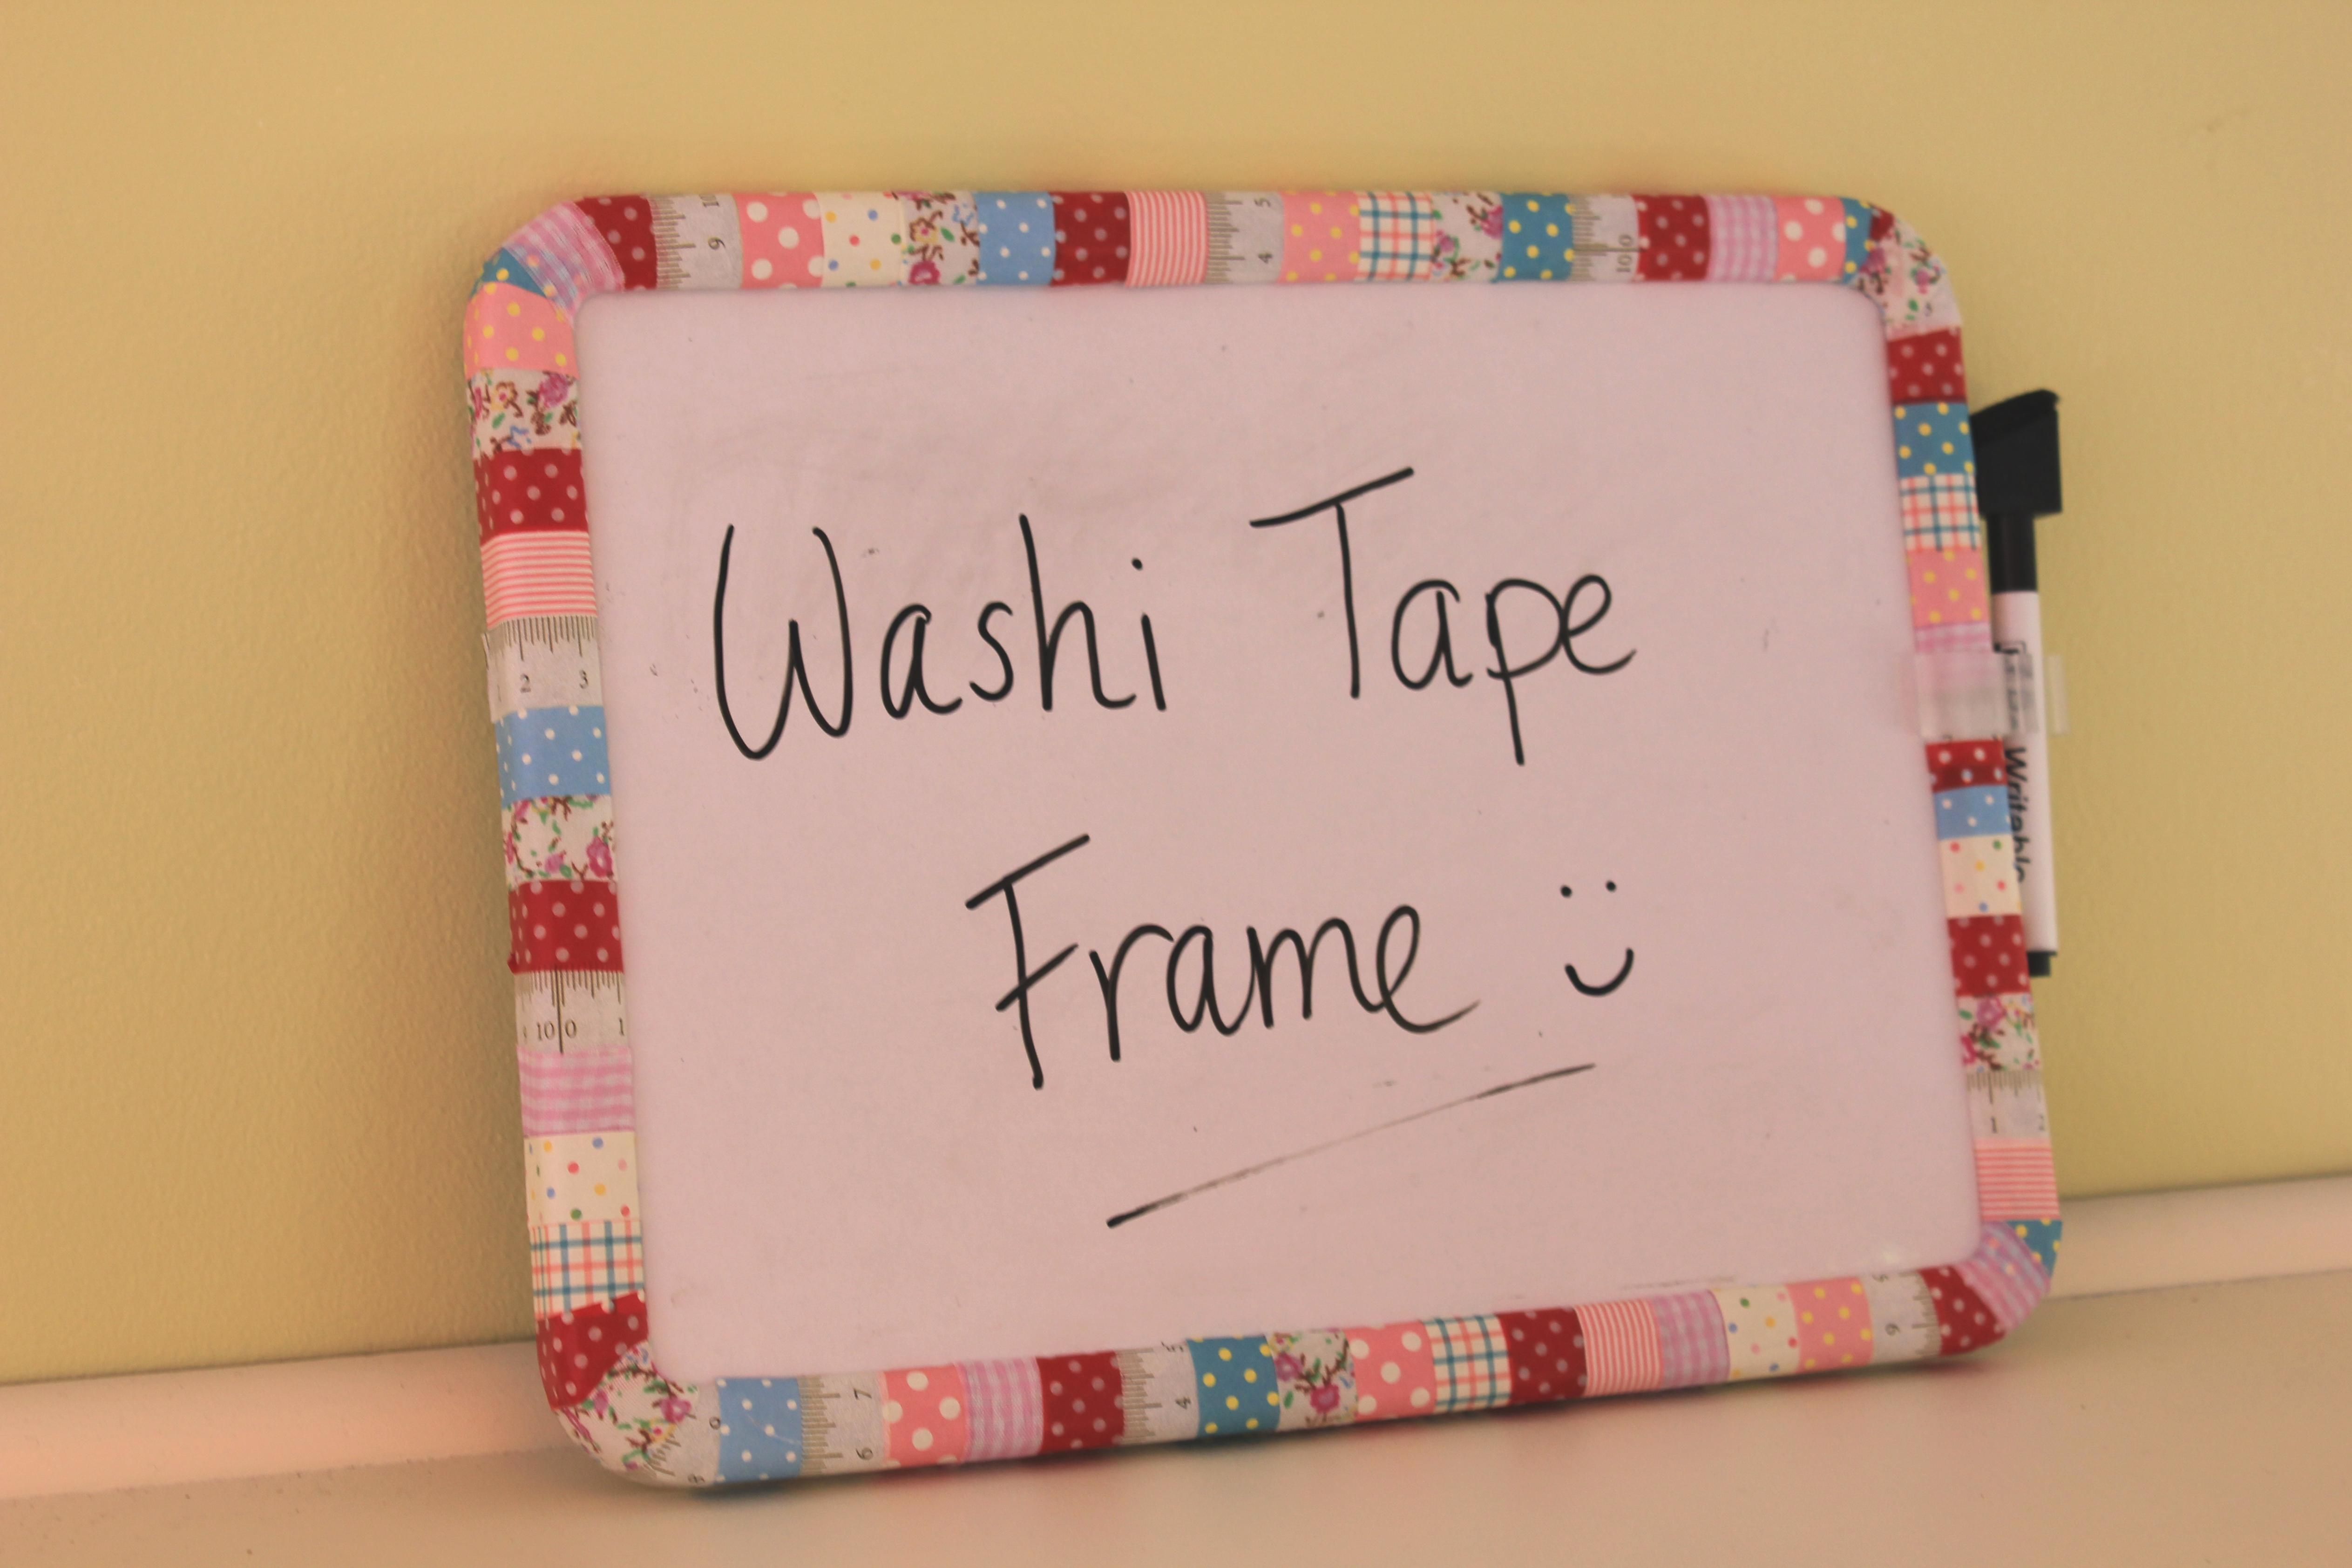 Diy Craft Project ~ Making A Funky Patchwork Frame -